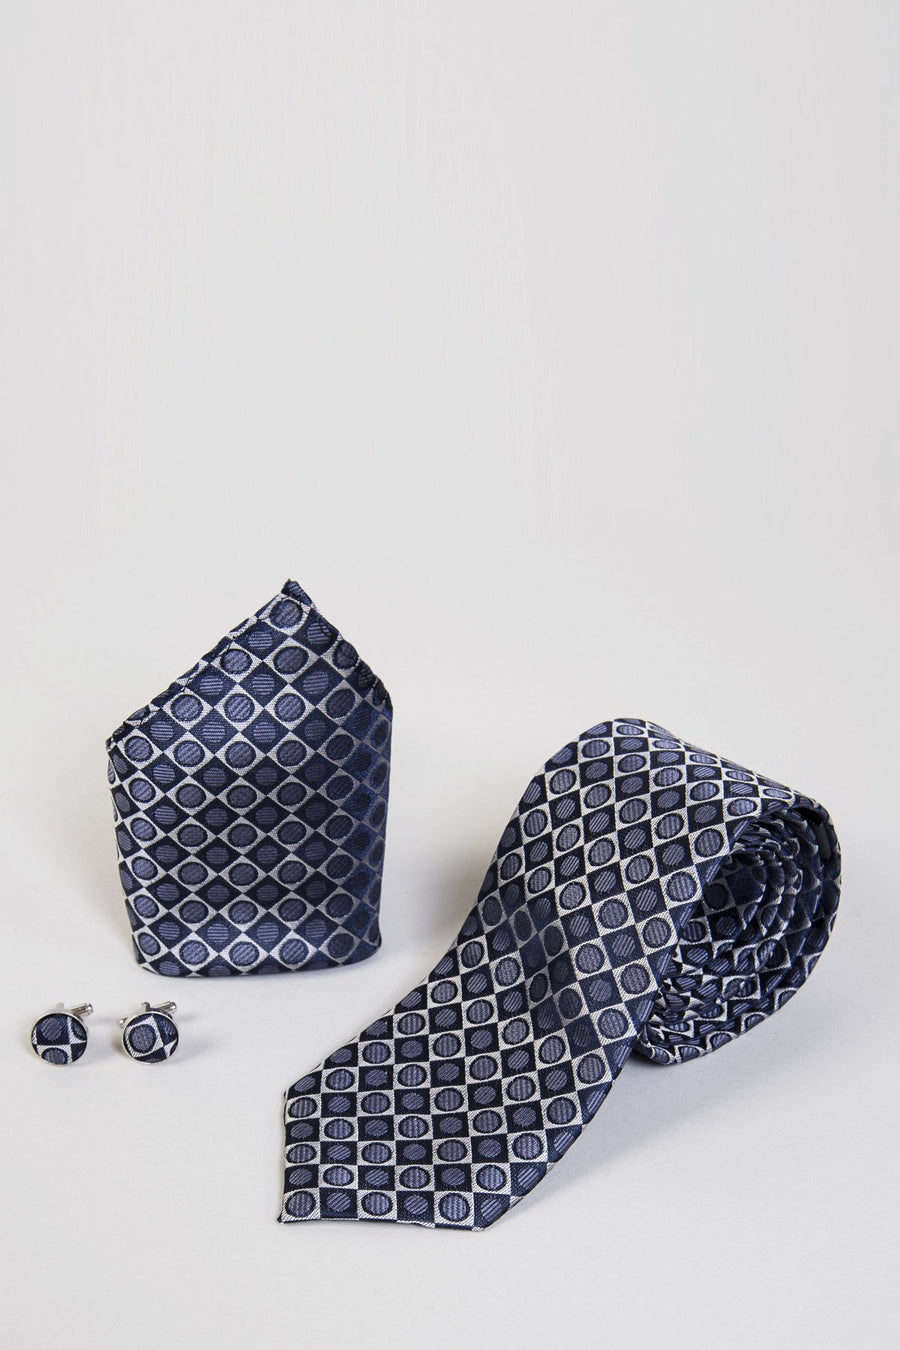 TB23 Circle and Square Tie, Cufflink & Pocket Square - Wedding Suit Direct